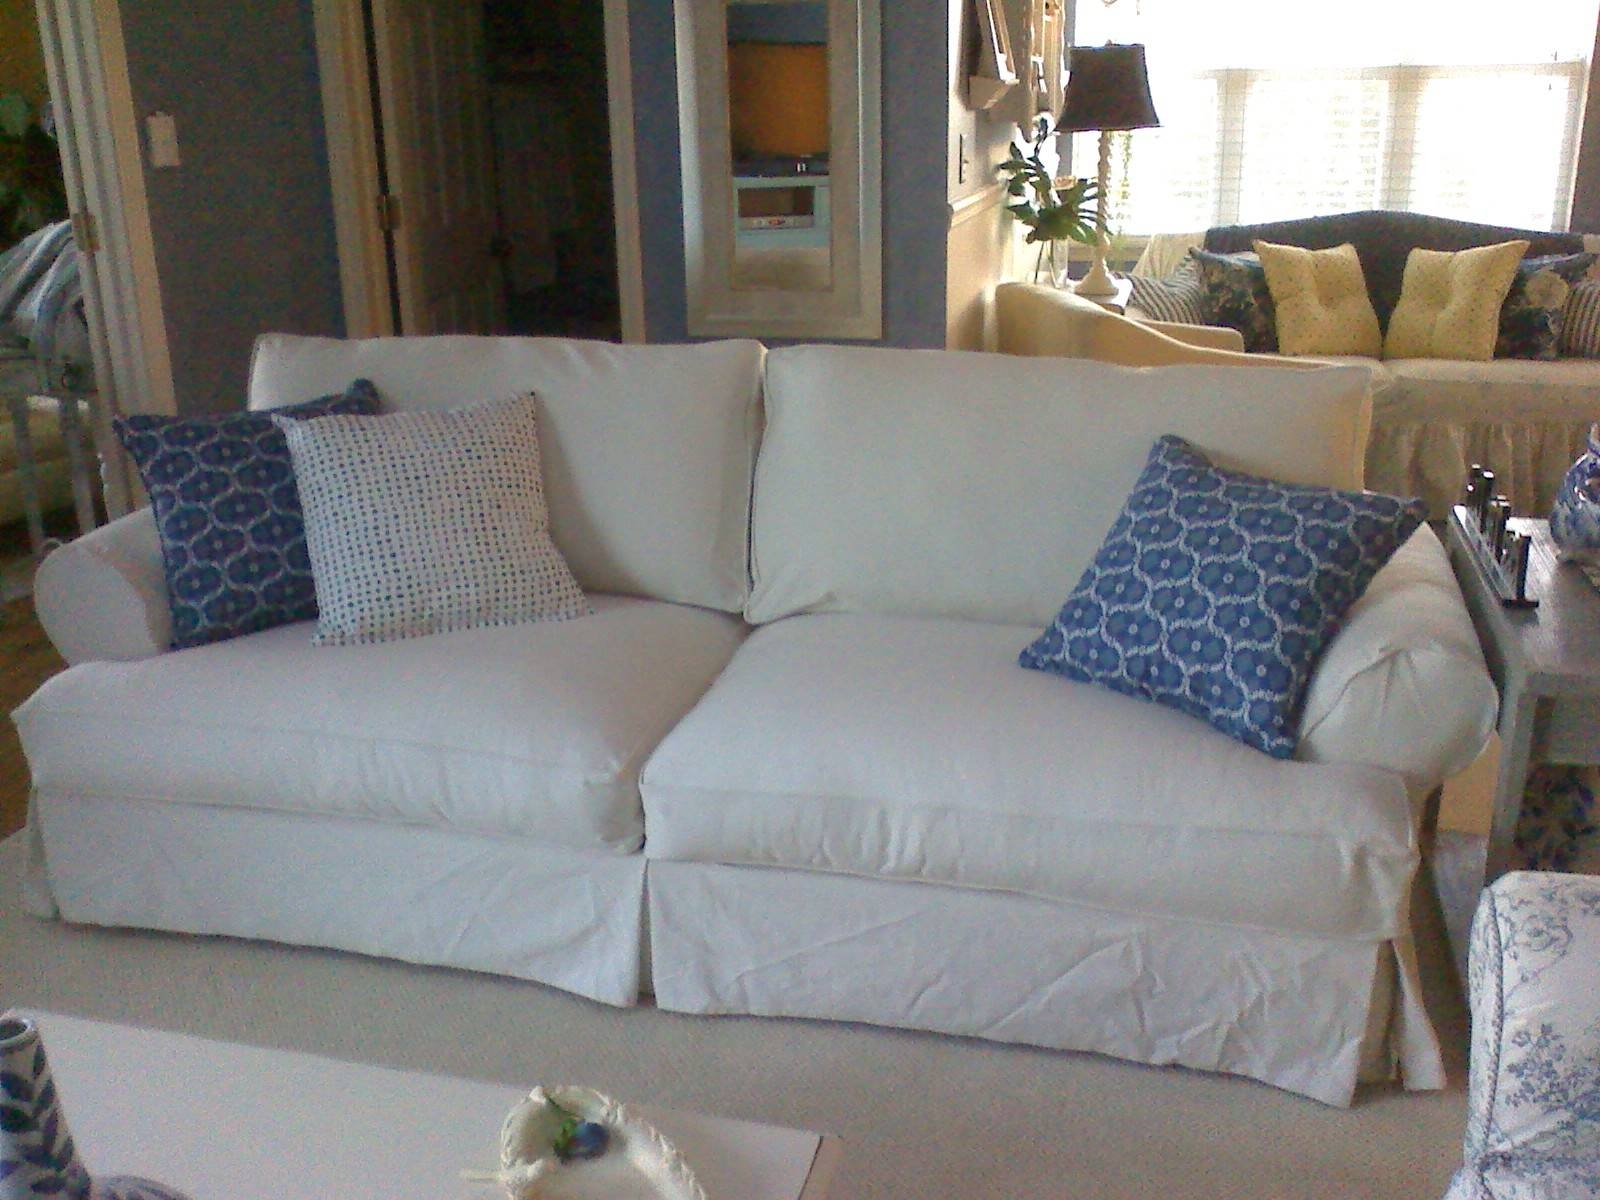 Replacement Slipcover Outlet Replacement Slipcovers For Famous Intended For Slipcovers Sofas (View 25 of 30)